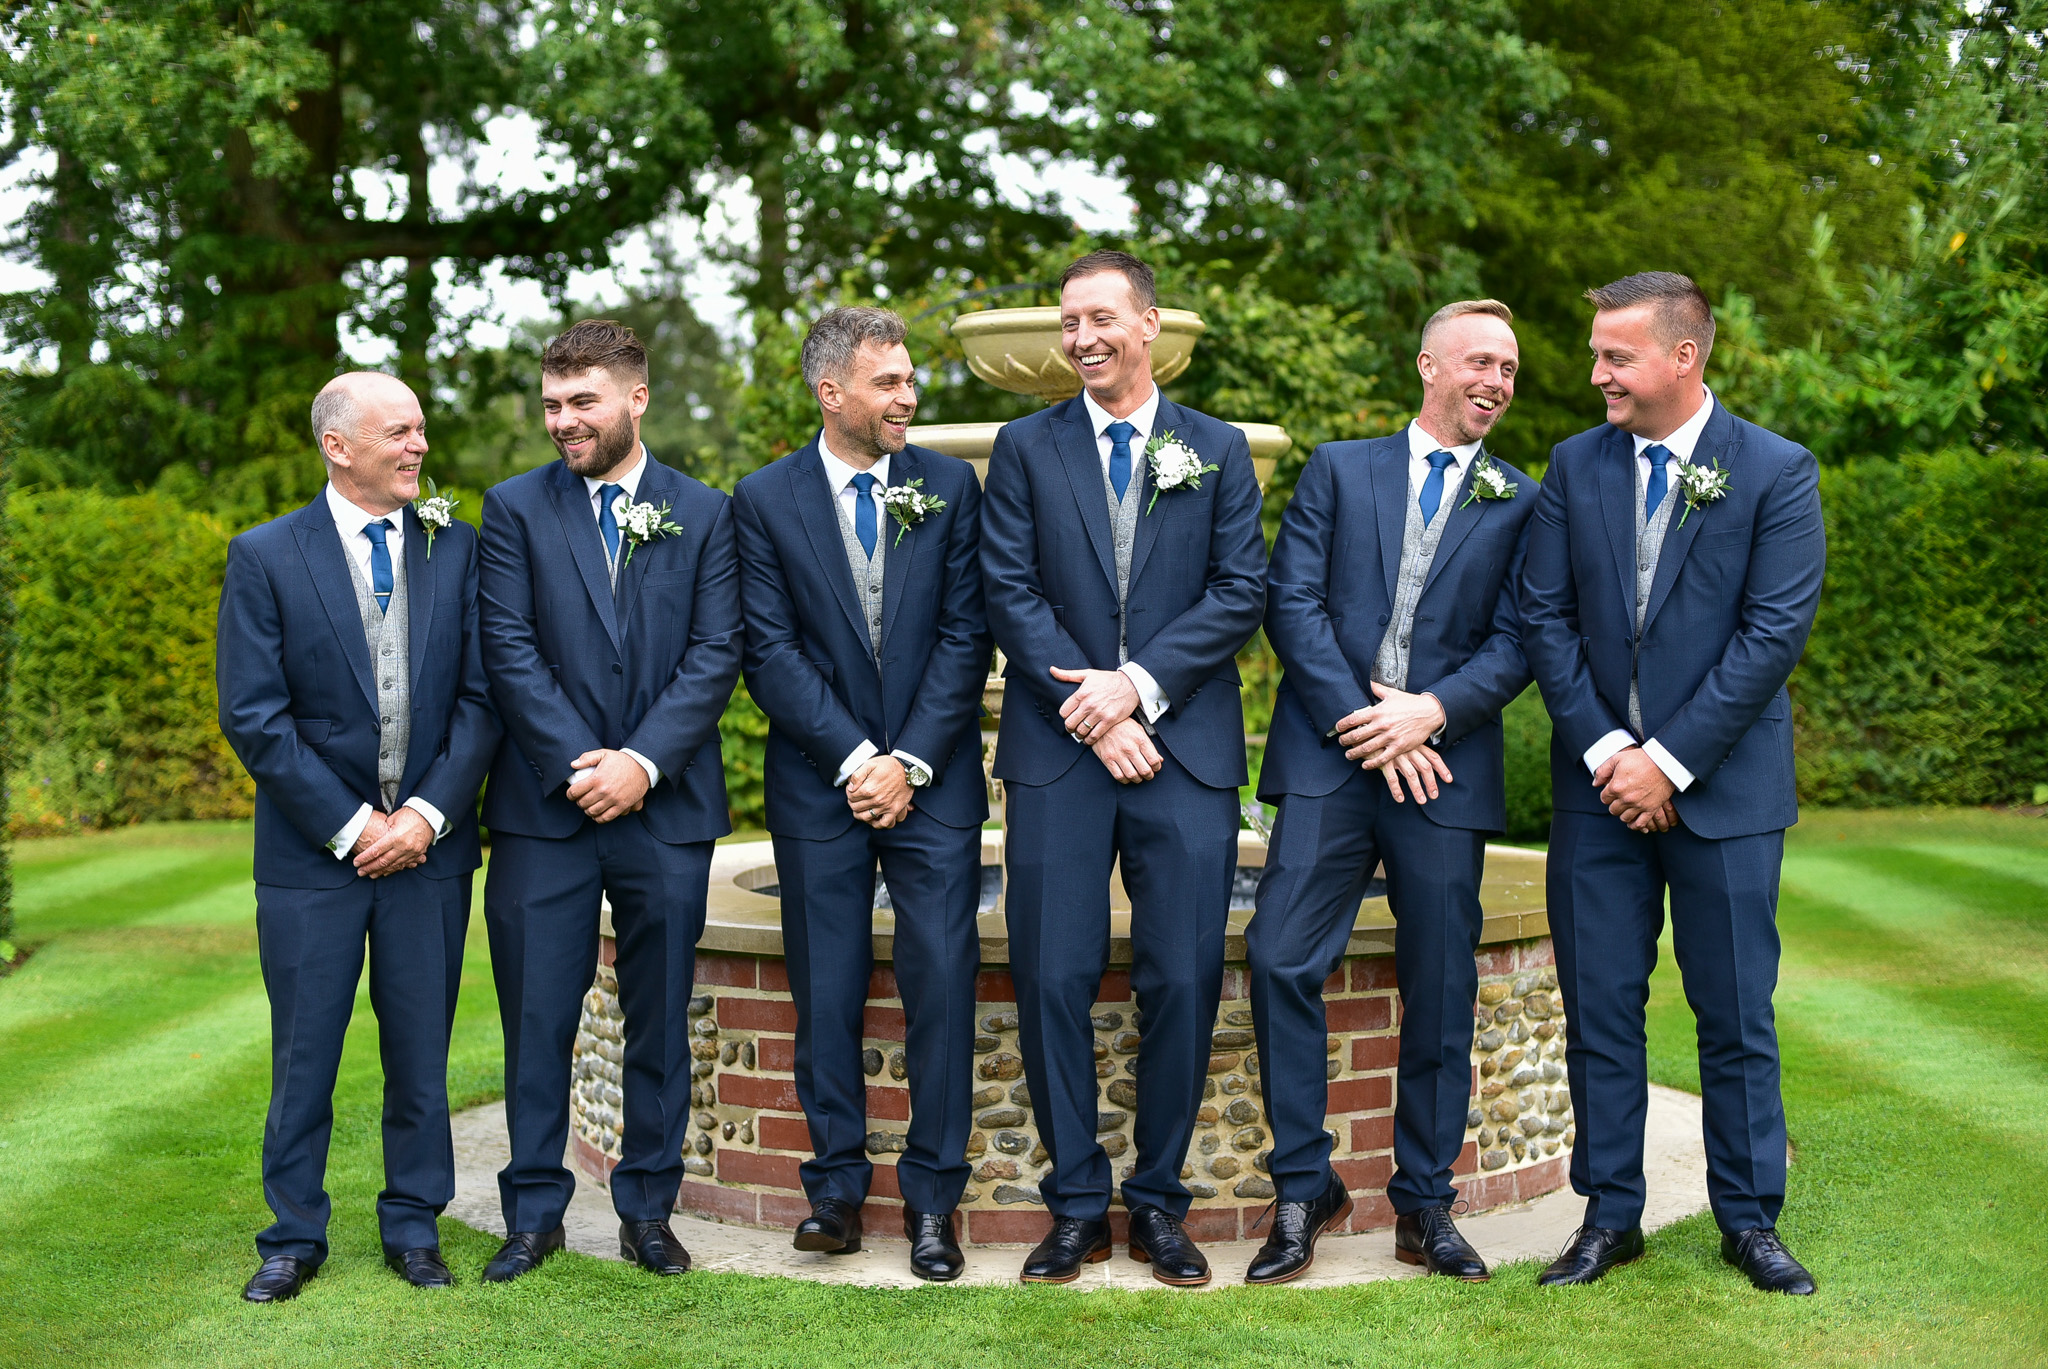 group photos in thursford wedding garden